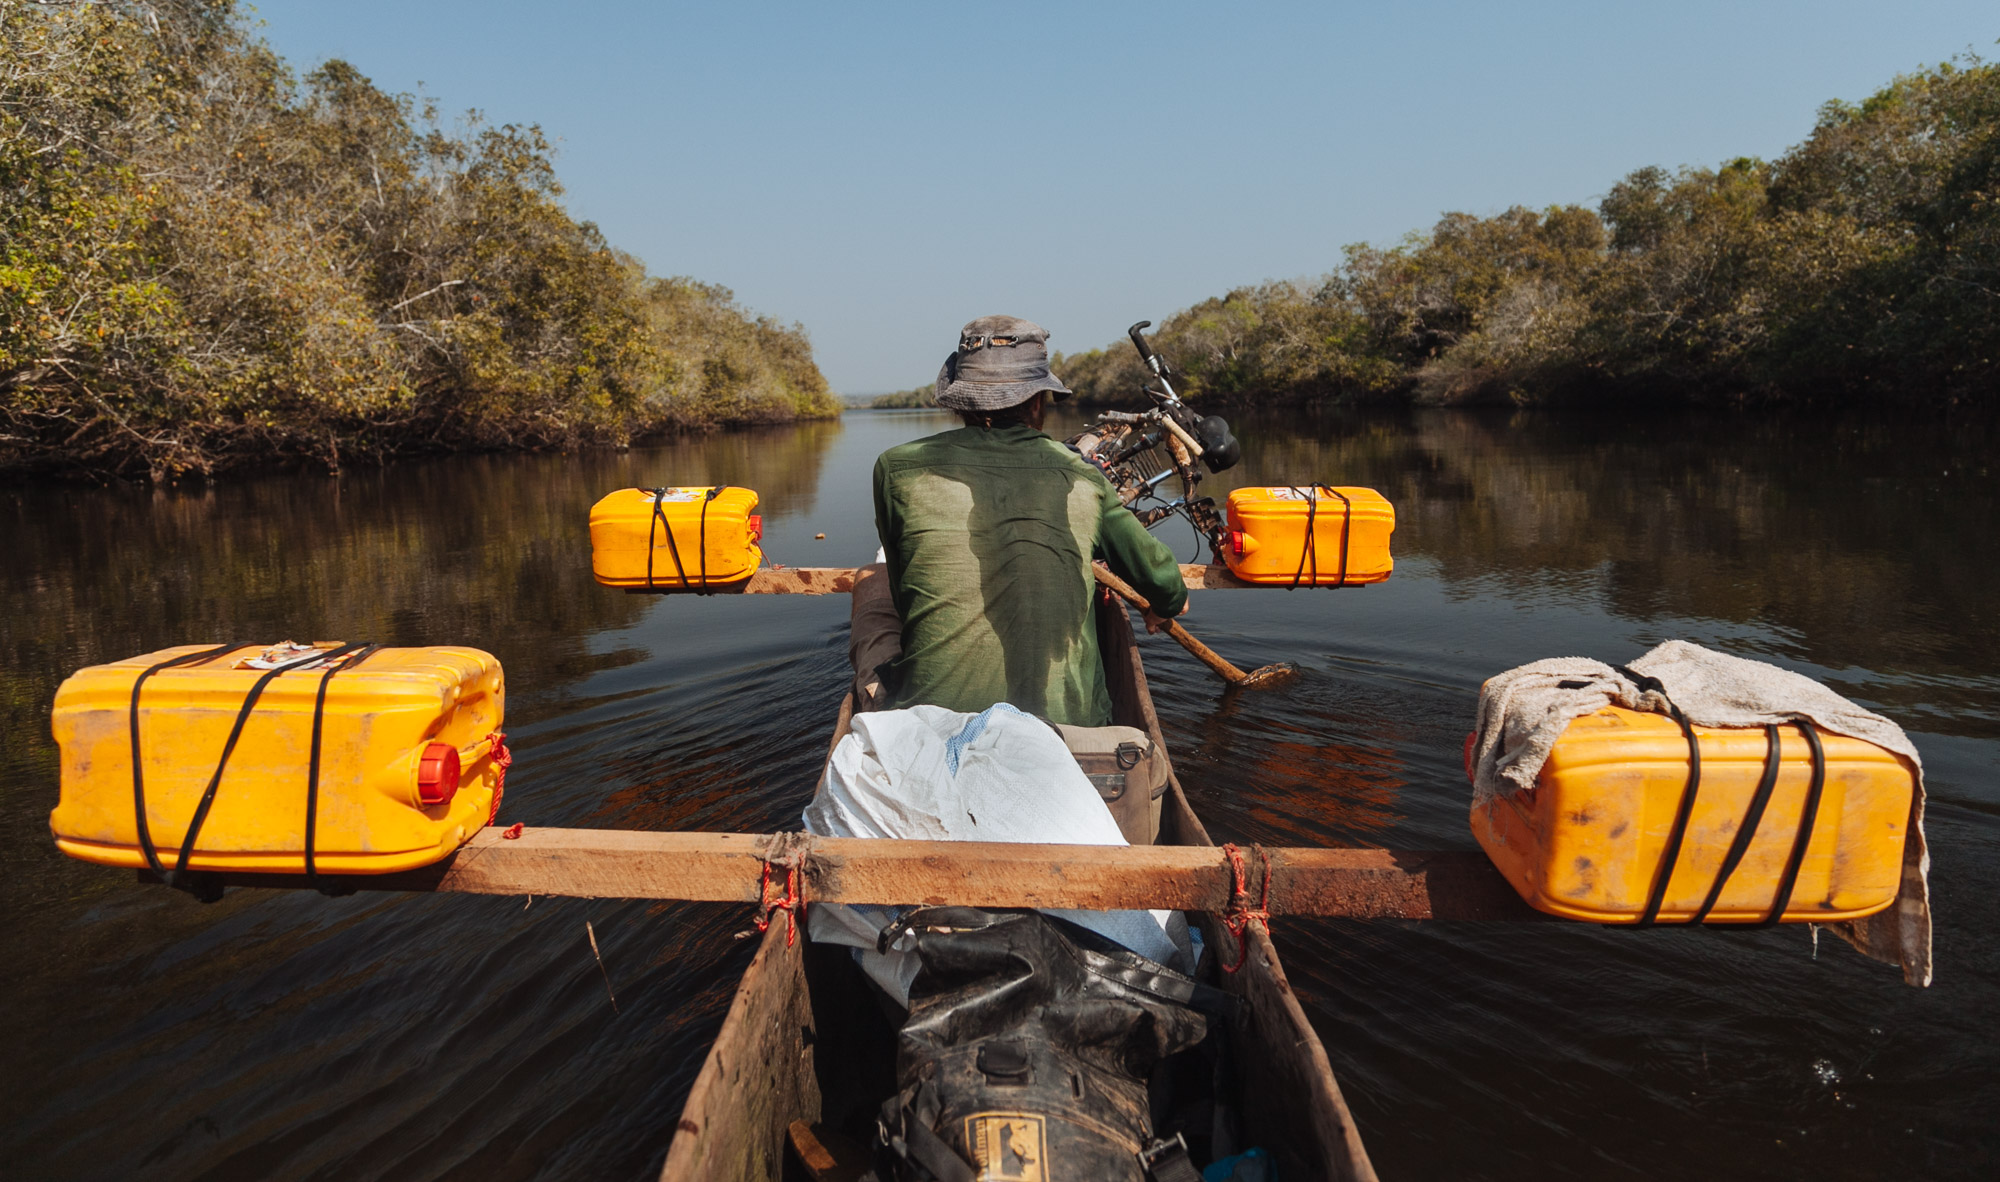 After previous experiences in Malawi with dugout canoes, we had learnt that they were not very stable so came up with this configuration in the hope of keeping us upright if we became unbalanced.